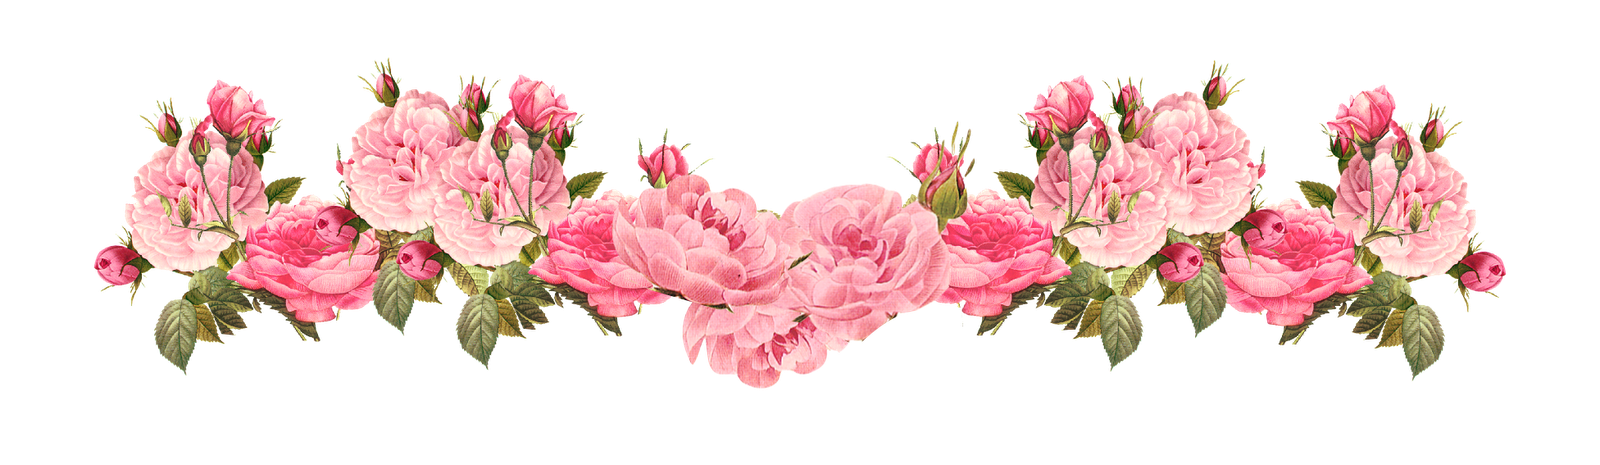 roses dividers clip art - photo #30